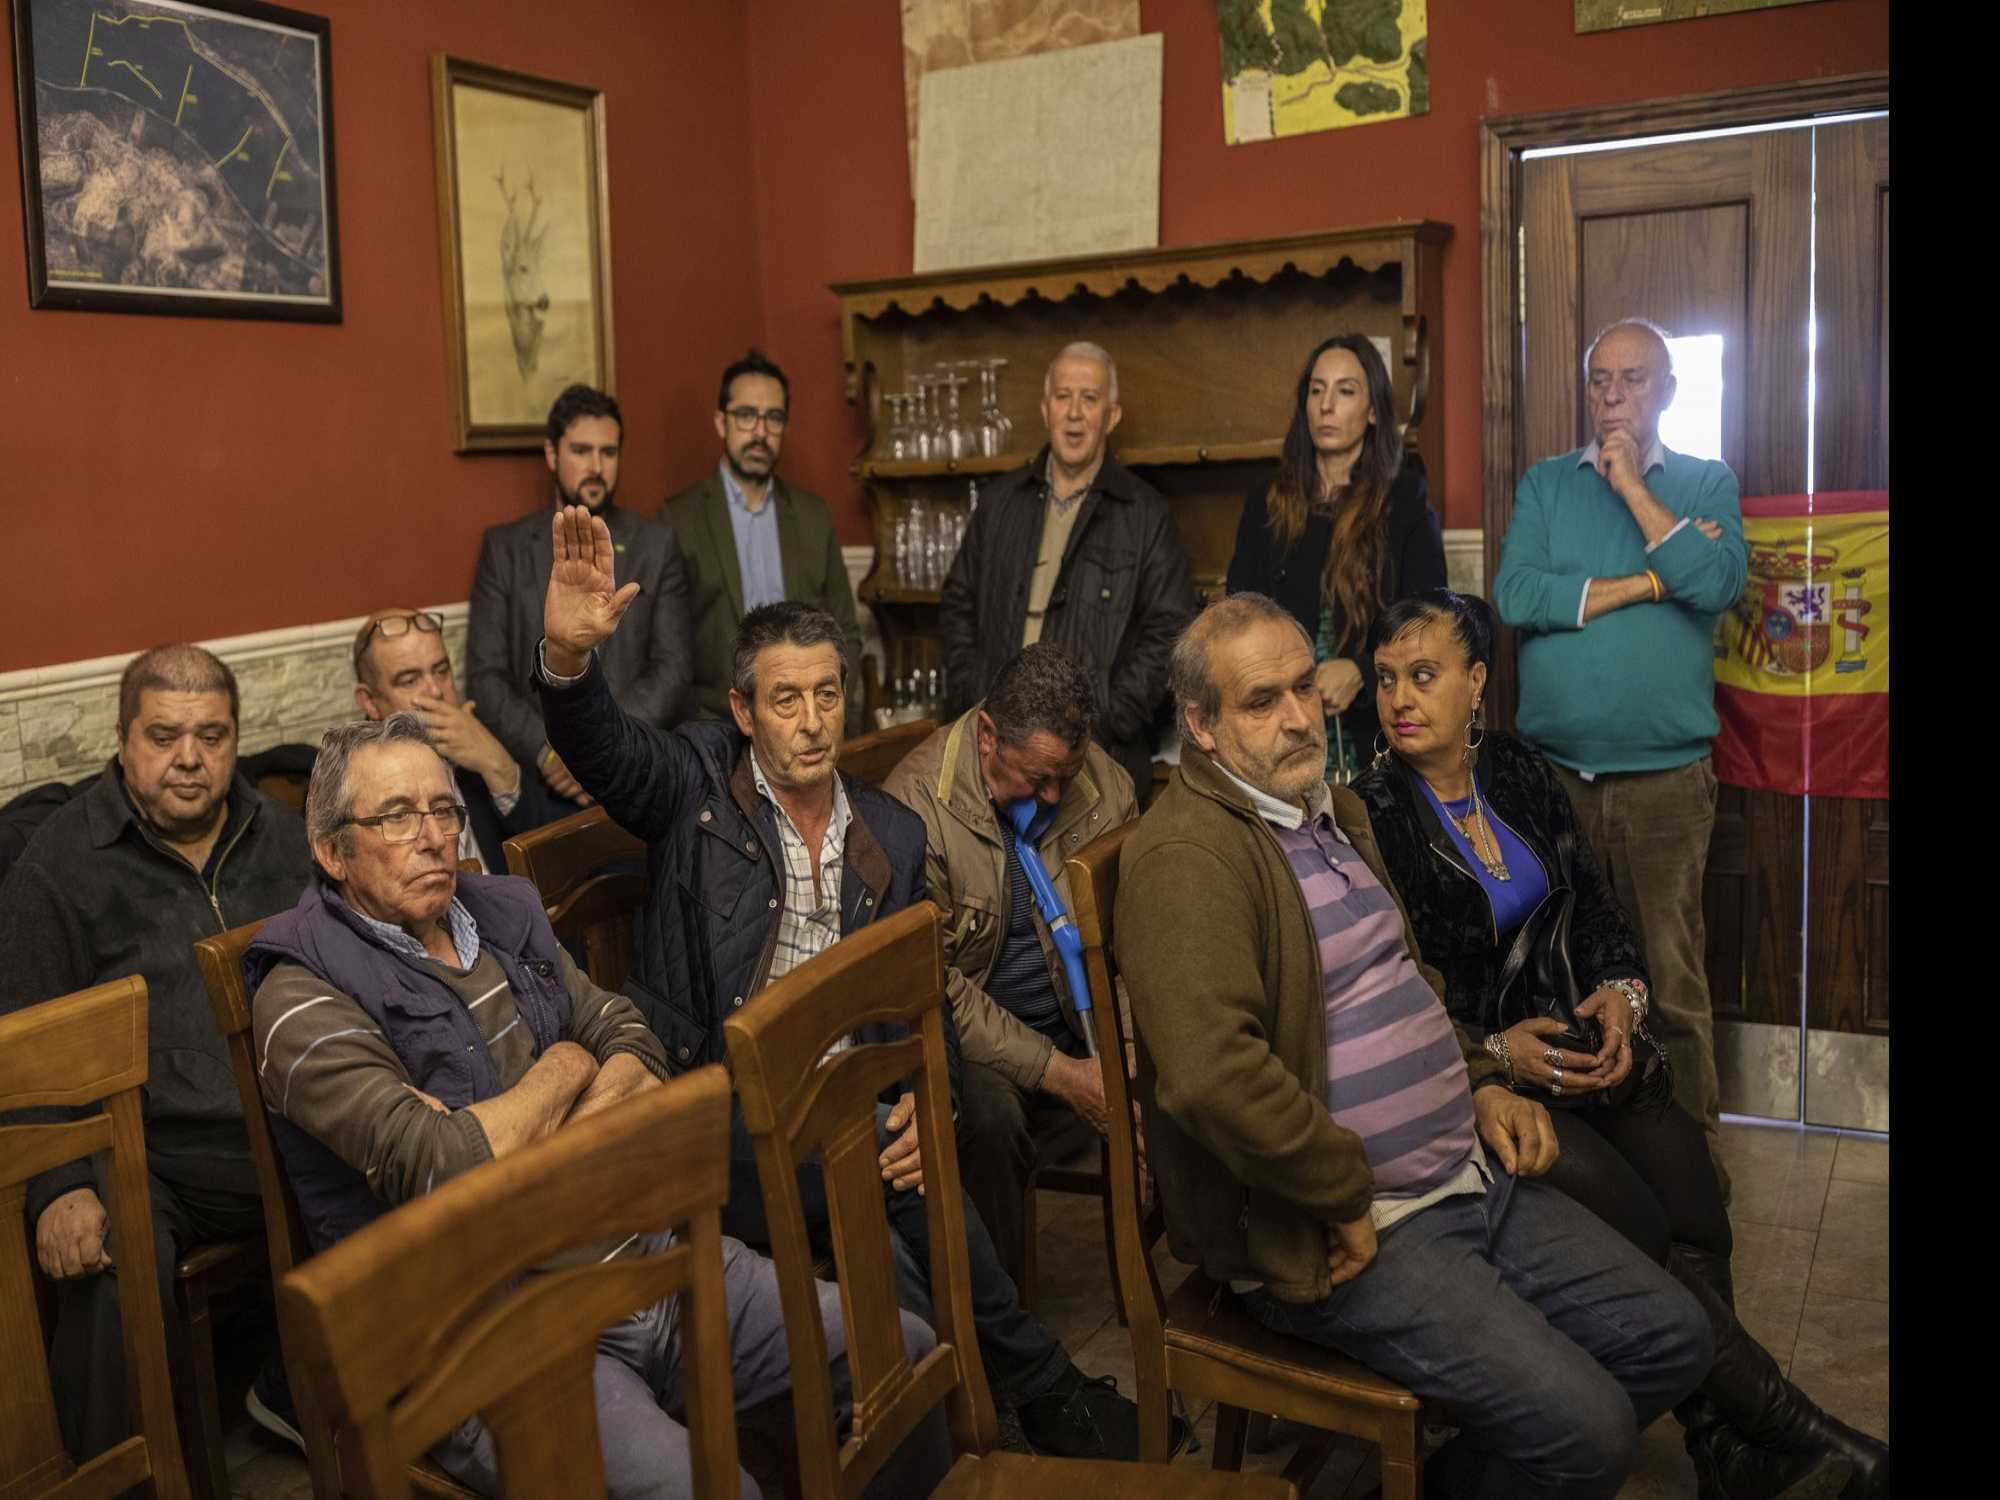 Spain's Rural Regions Become Fierce Battleground for Votes